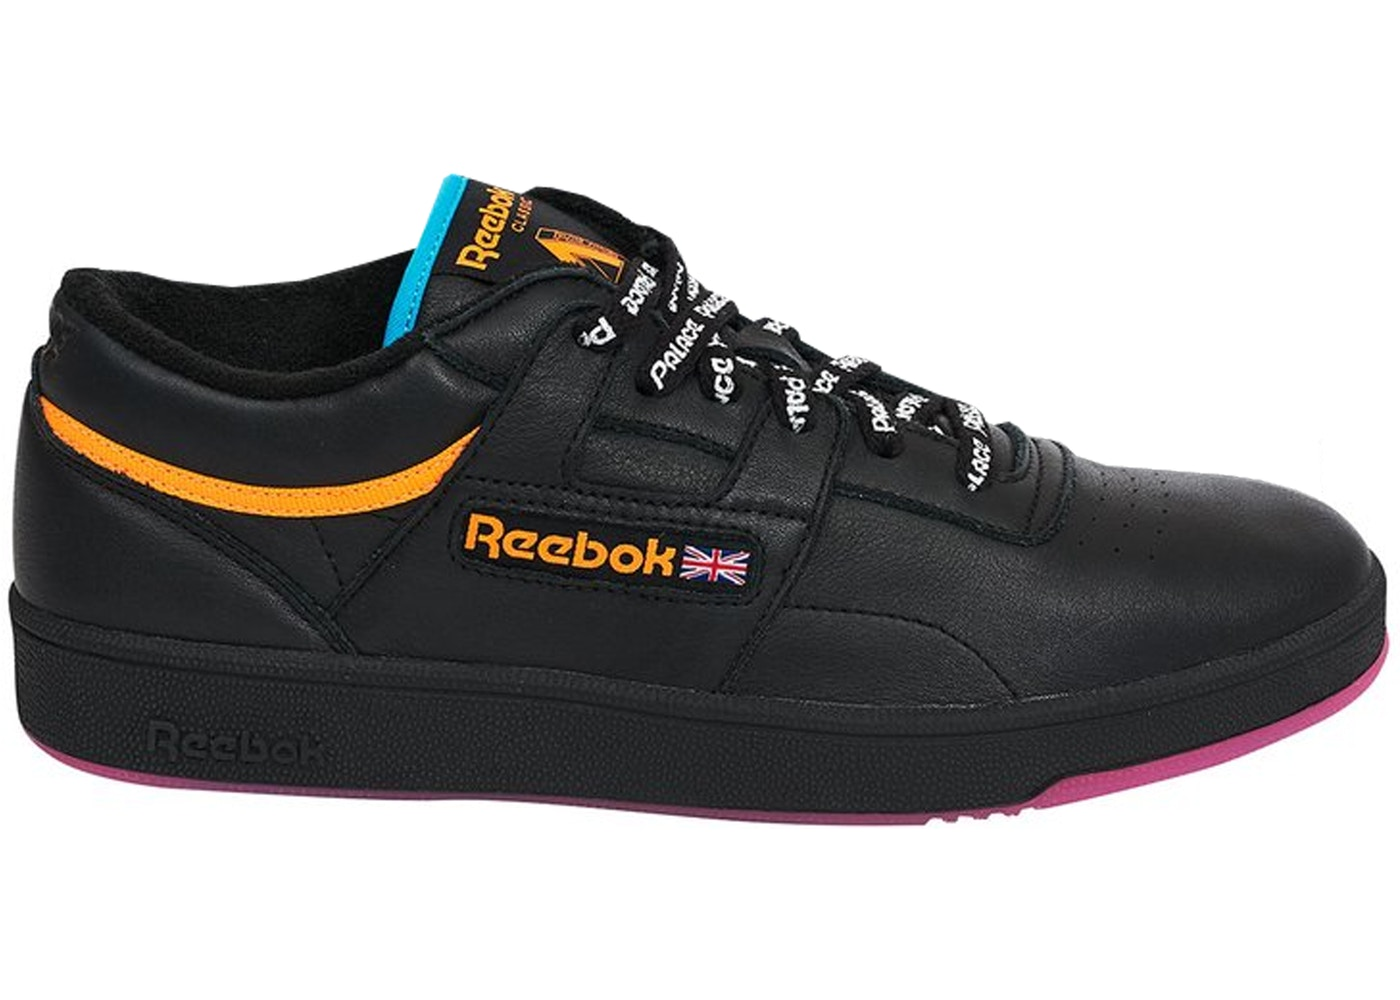 6e09581077cc Reebok Club Workout Black - TBD